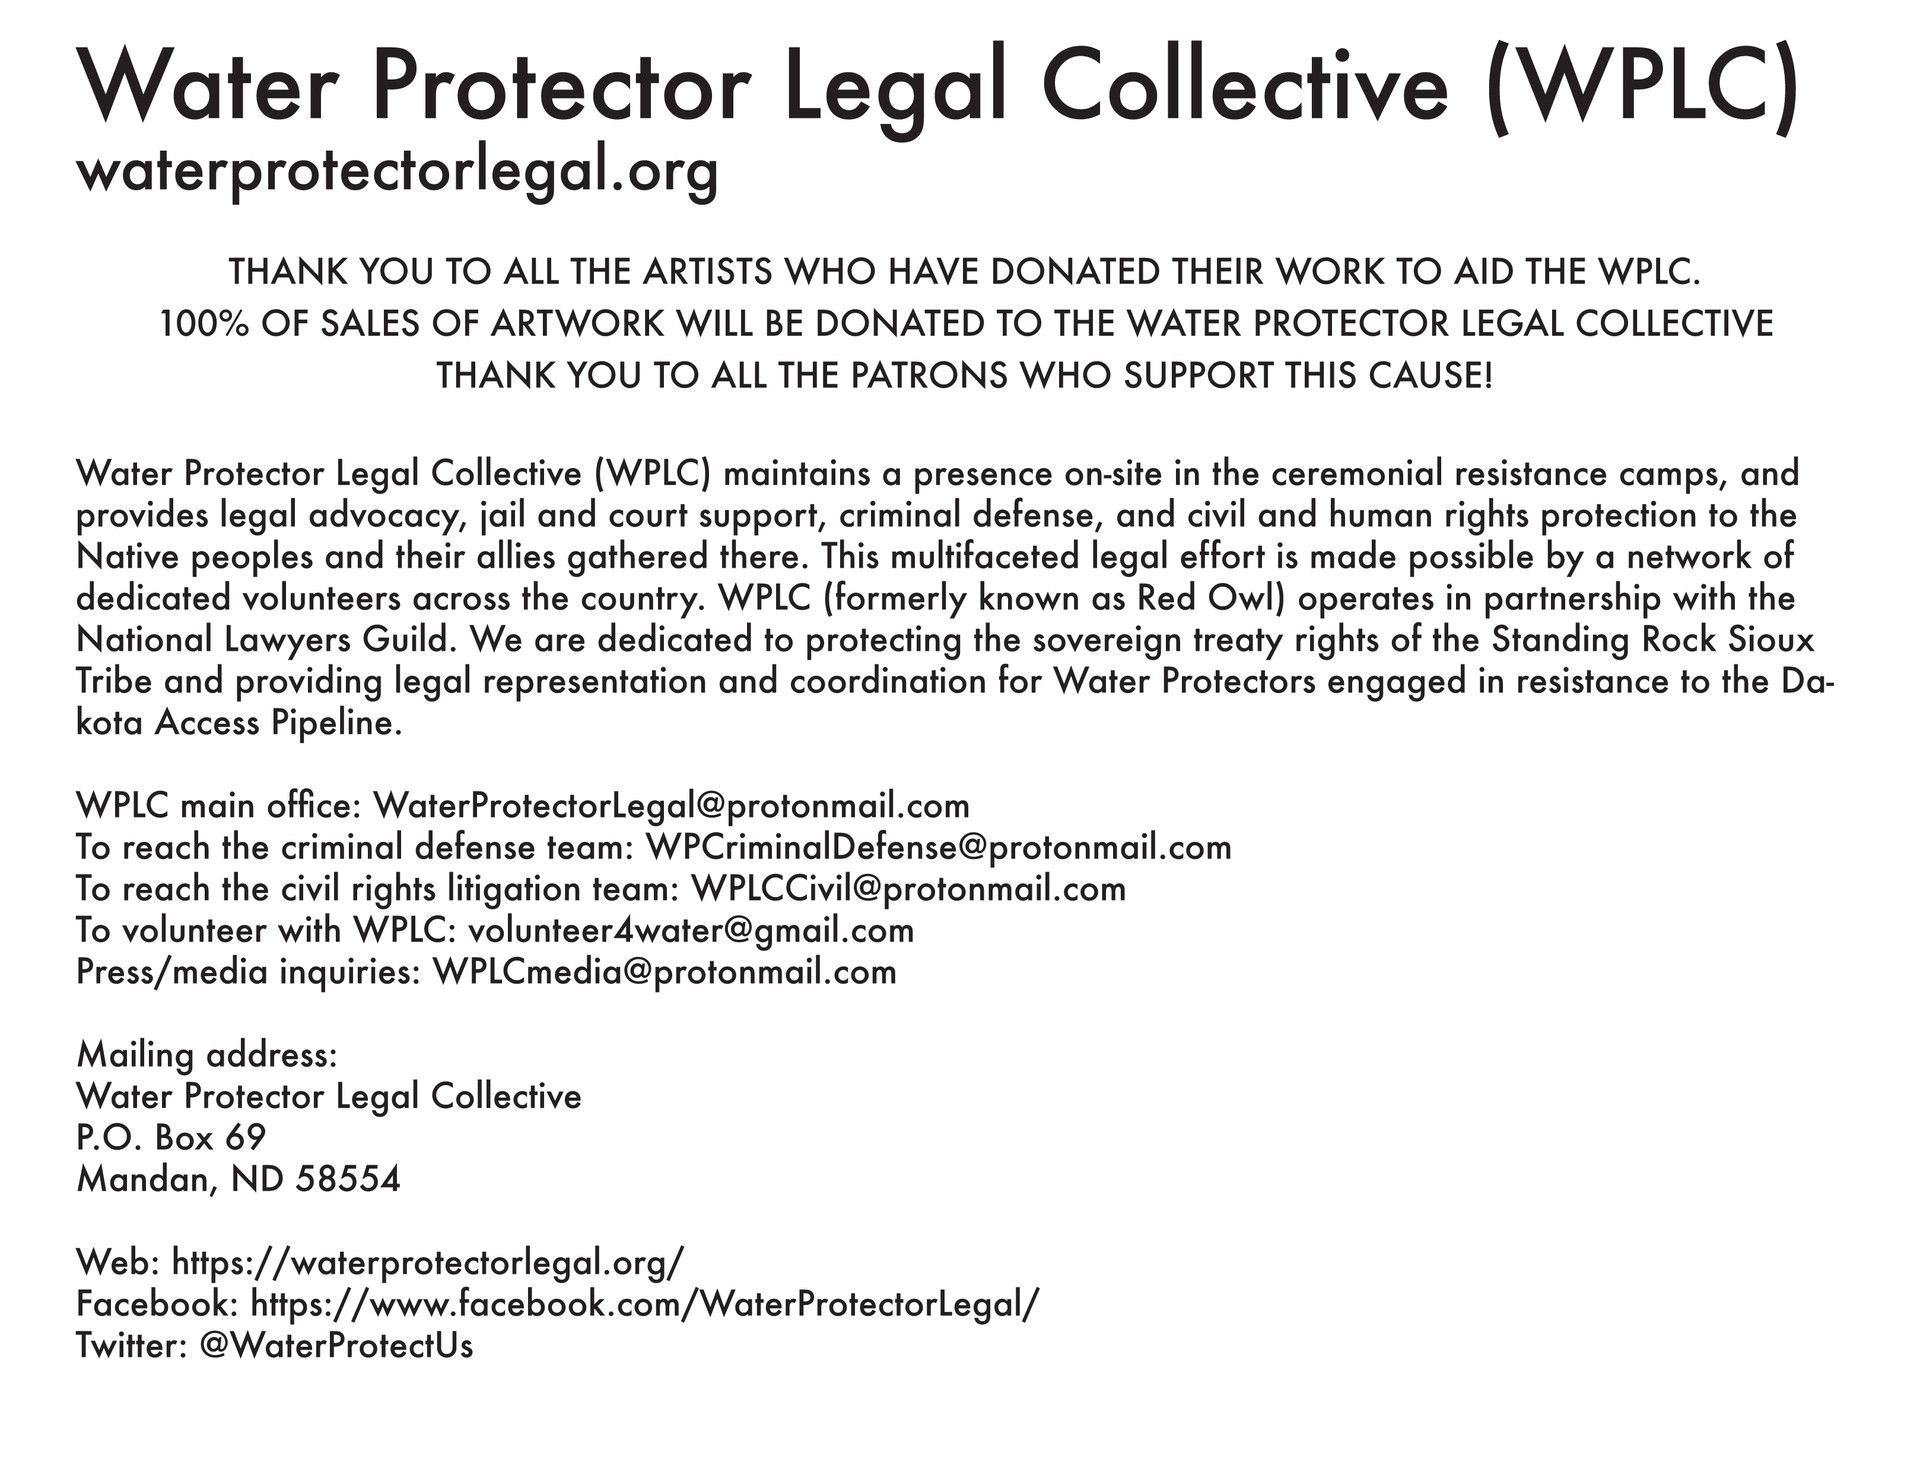 water_protector_legal_collective_info.jp